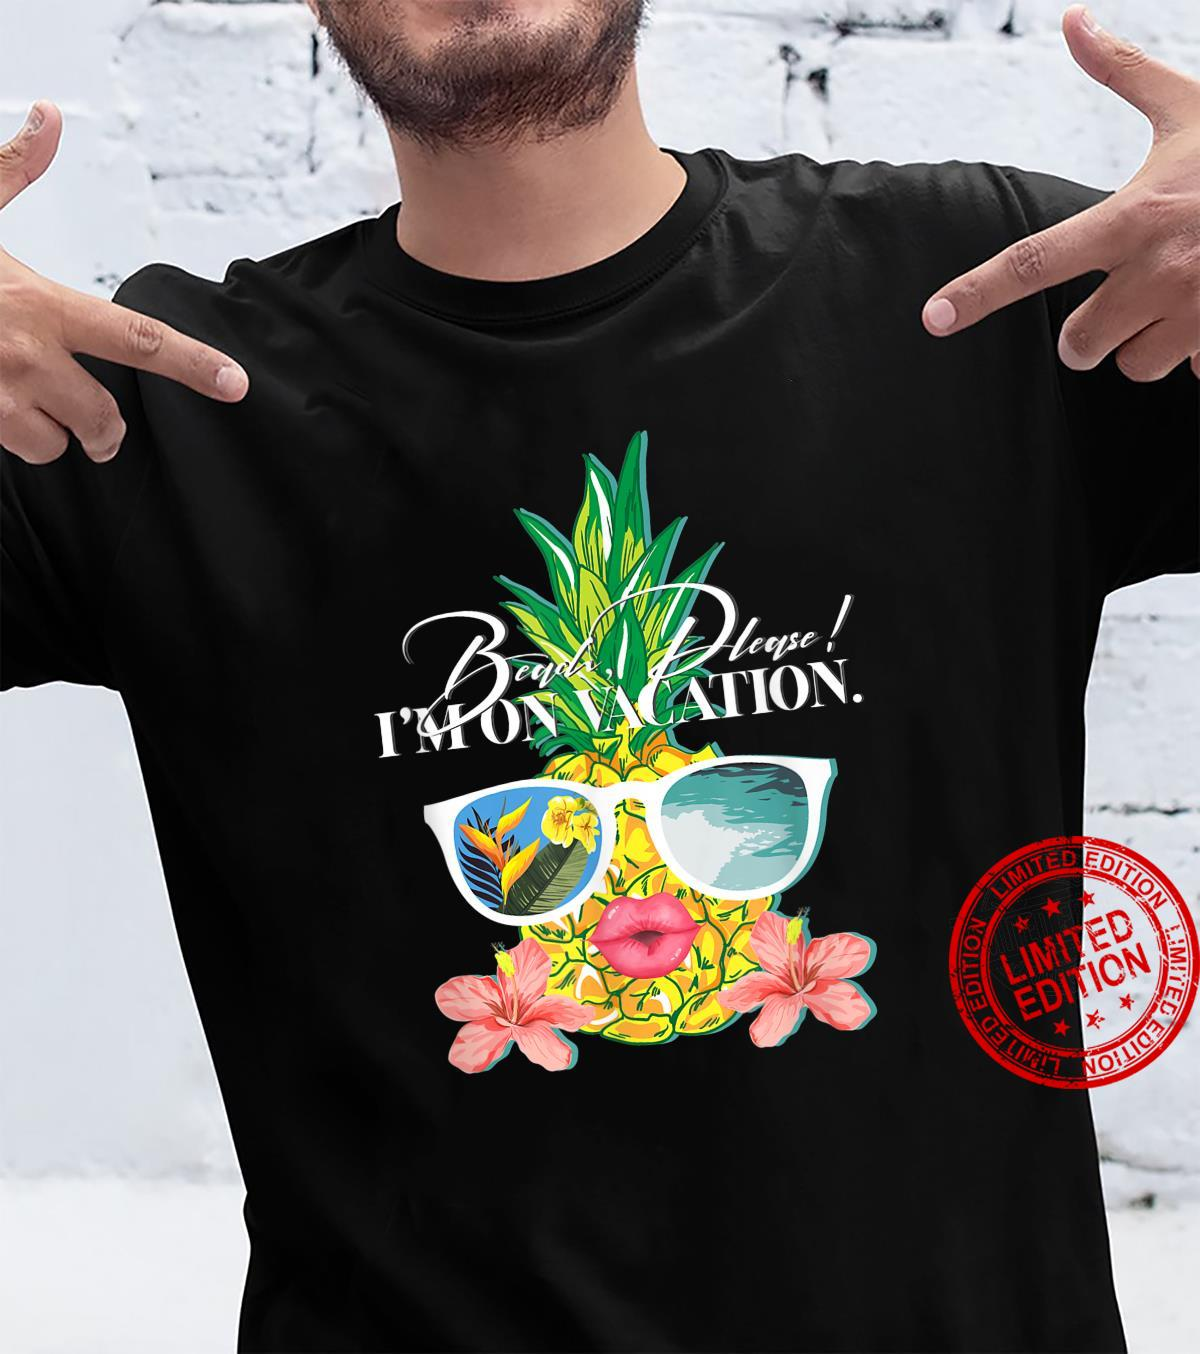 Beach, Please I'm on Vacation, Pineapple Shirt